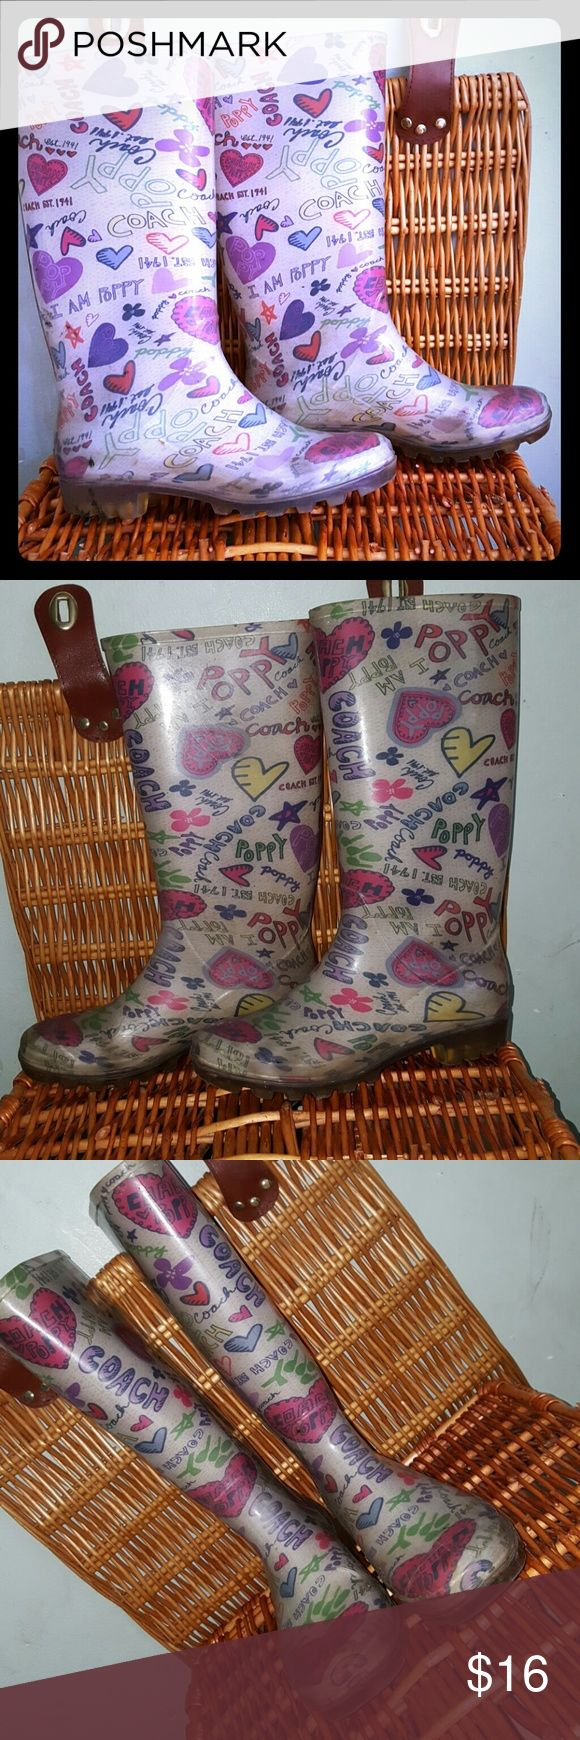 Coach Poppy size 6 rain boots Cute & whimsical. Some wear to the heels. Dark smudges. Coach Shoes Winter & Rain Boots